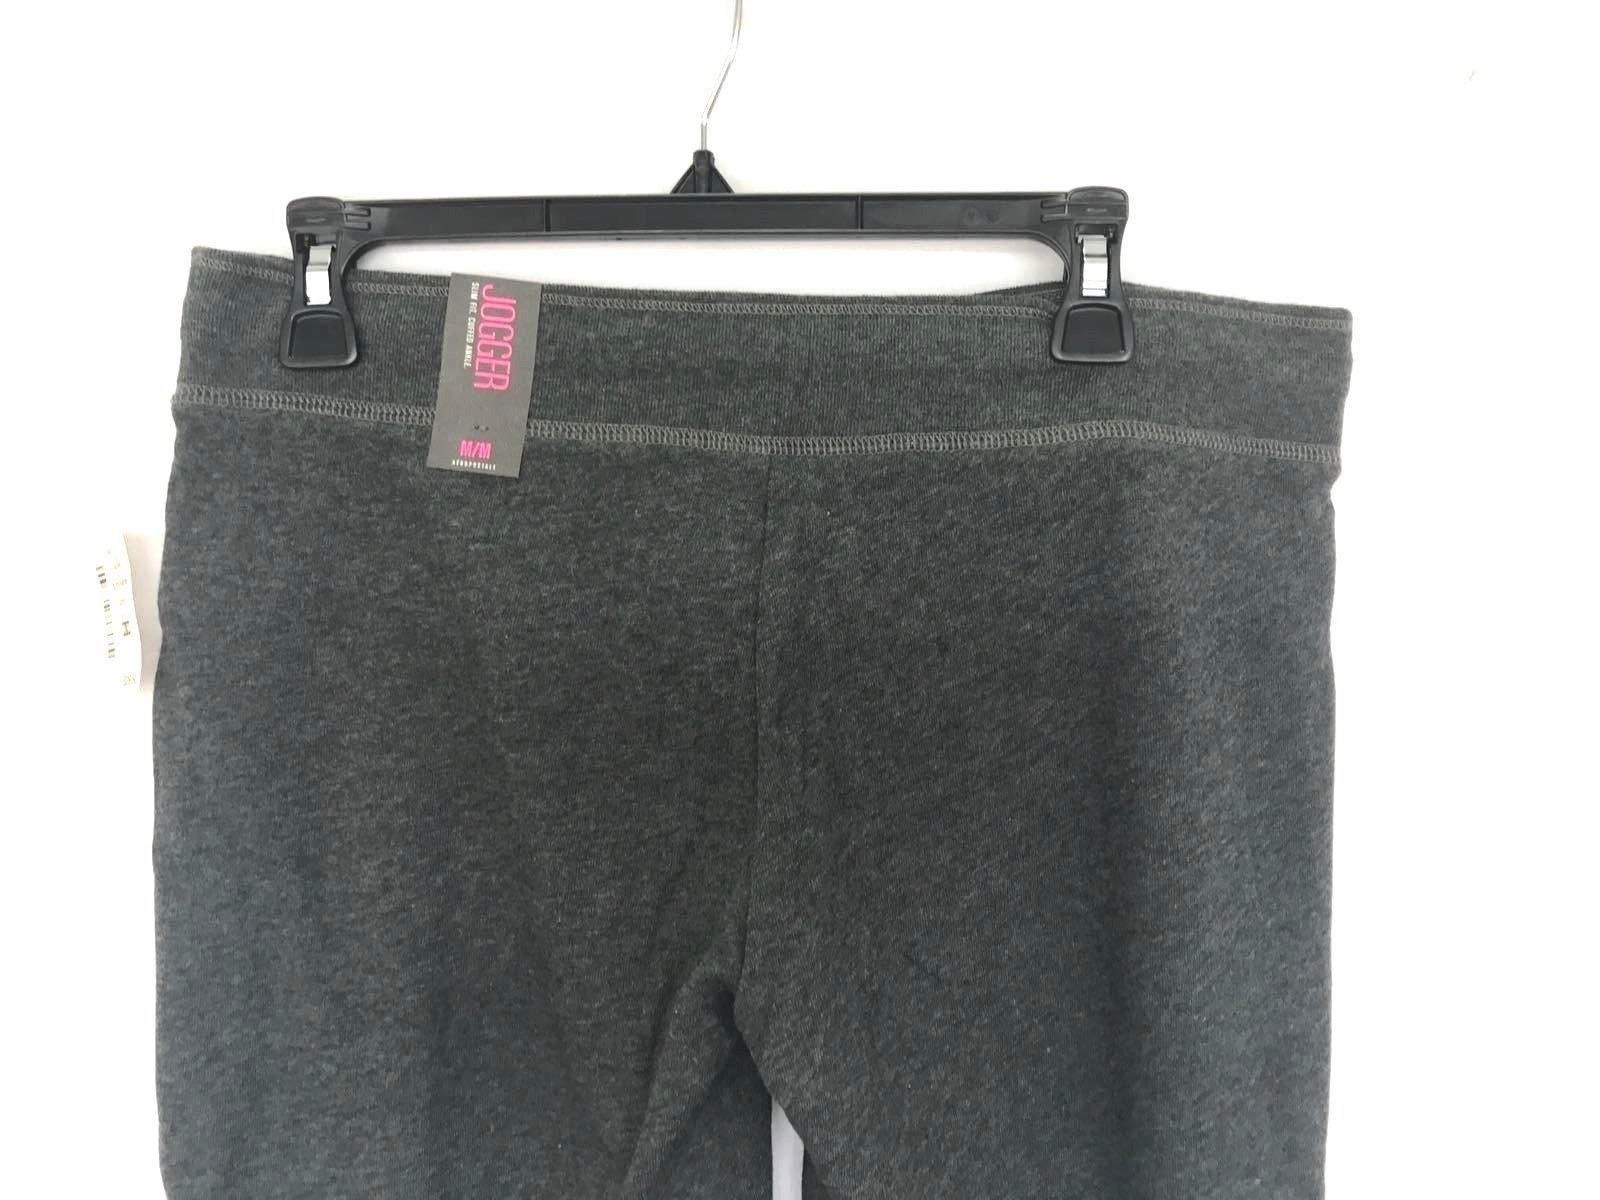 3205 Aeropostale Joggers Drawstring Sweatpants GRAY Small Medium Large XLarge